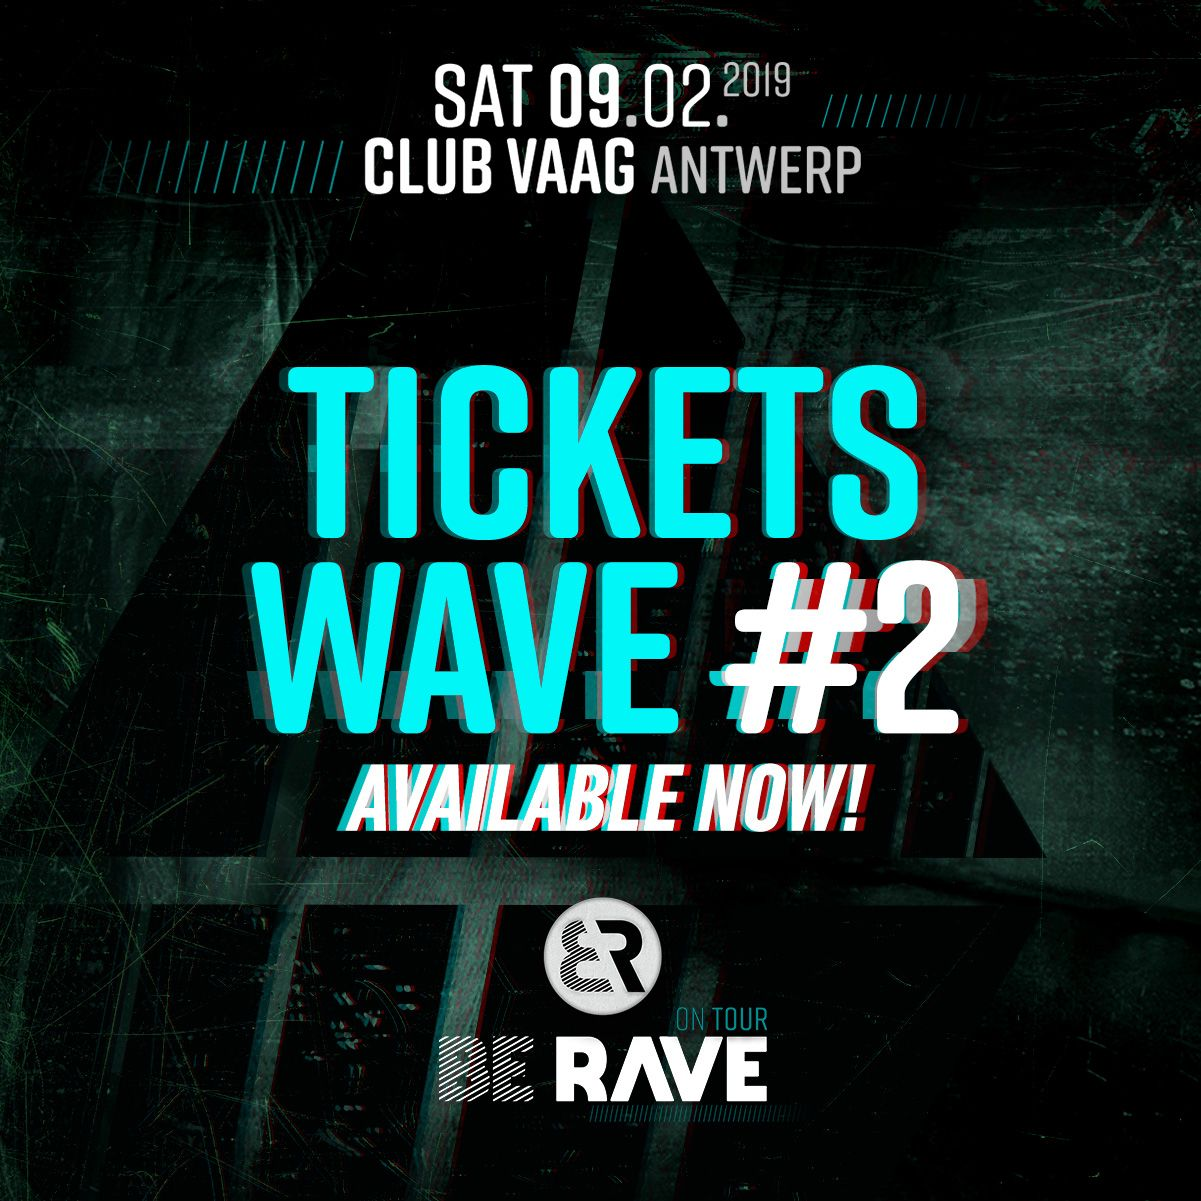 Ready for Wave #2